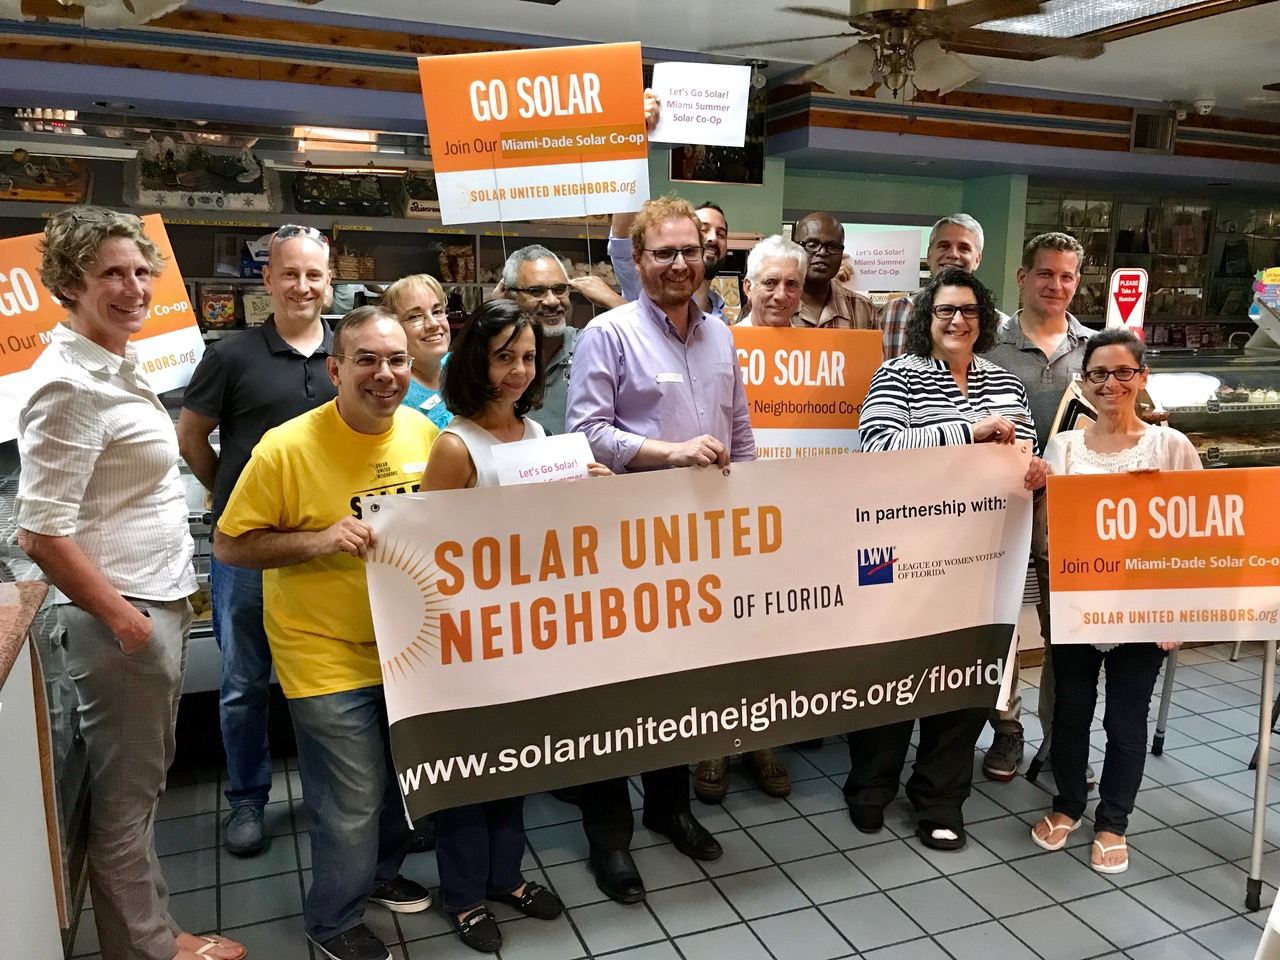 Don't let Coral Gables stop you from going solar | Solar